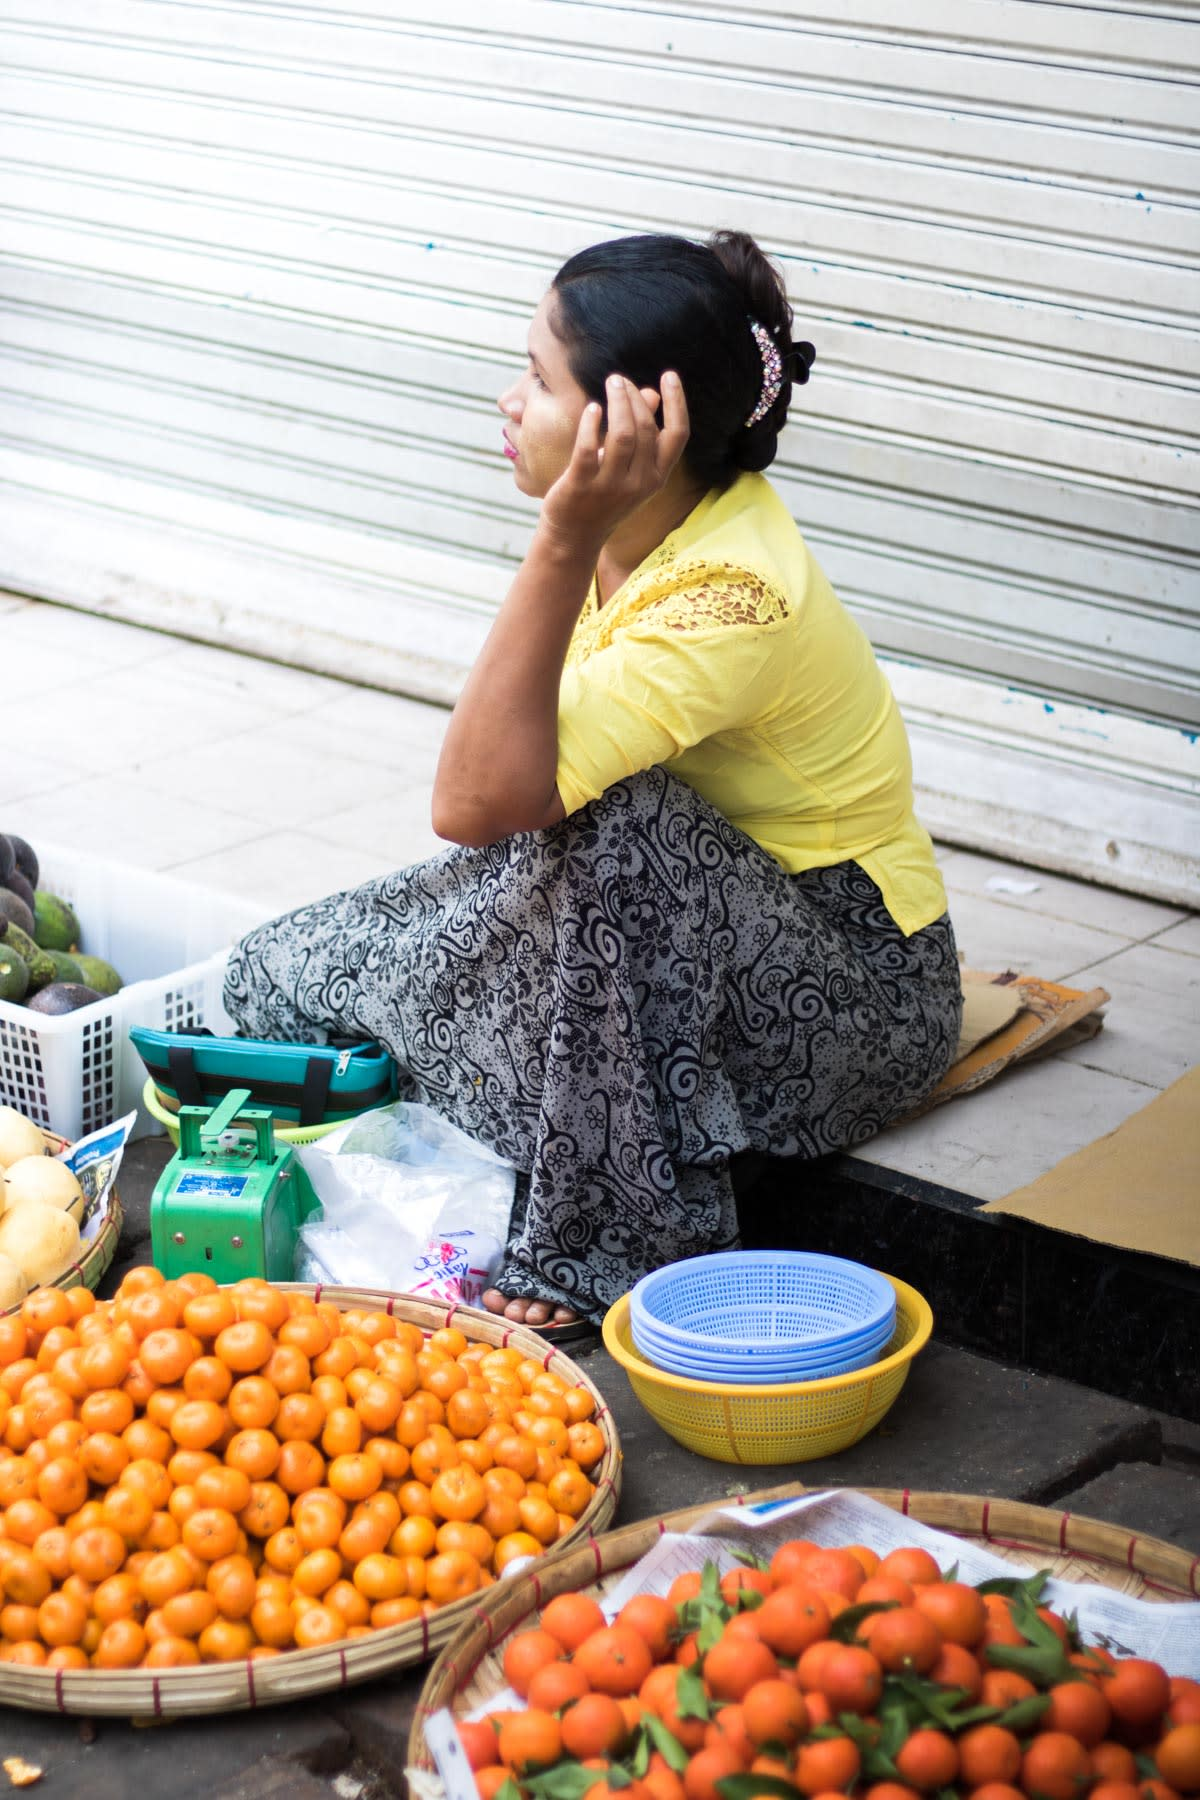 A fruits vendor sitting on curbside with tangerines on display